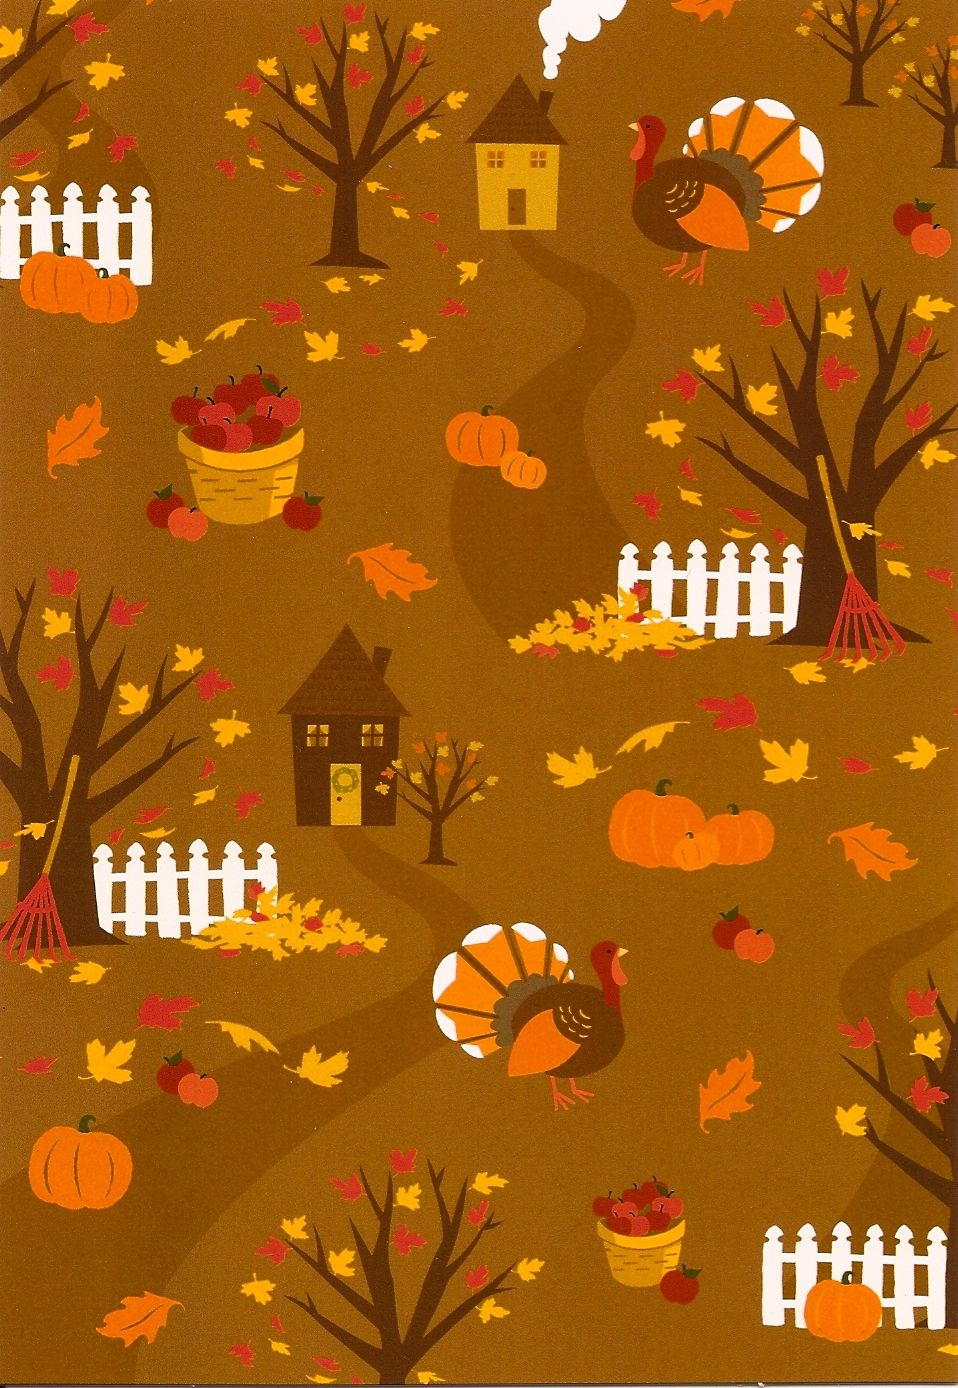 Thanksgiving card. Fall wallpaper